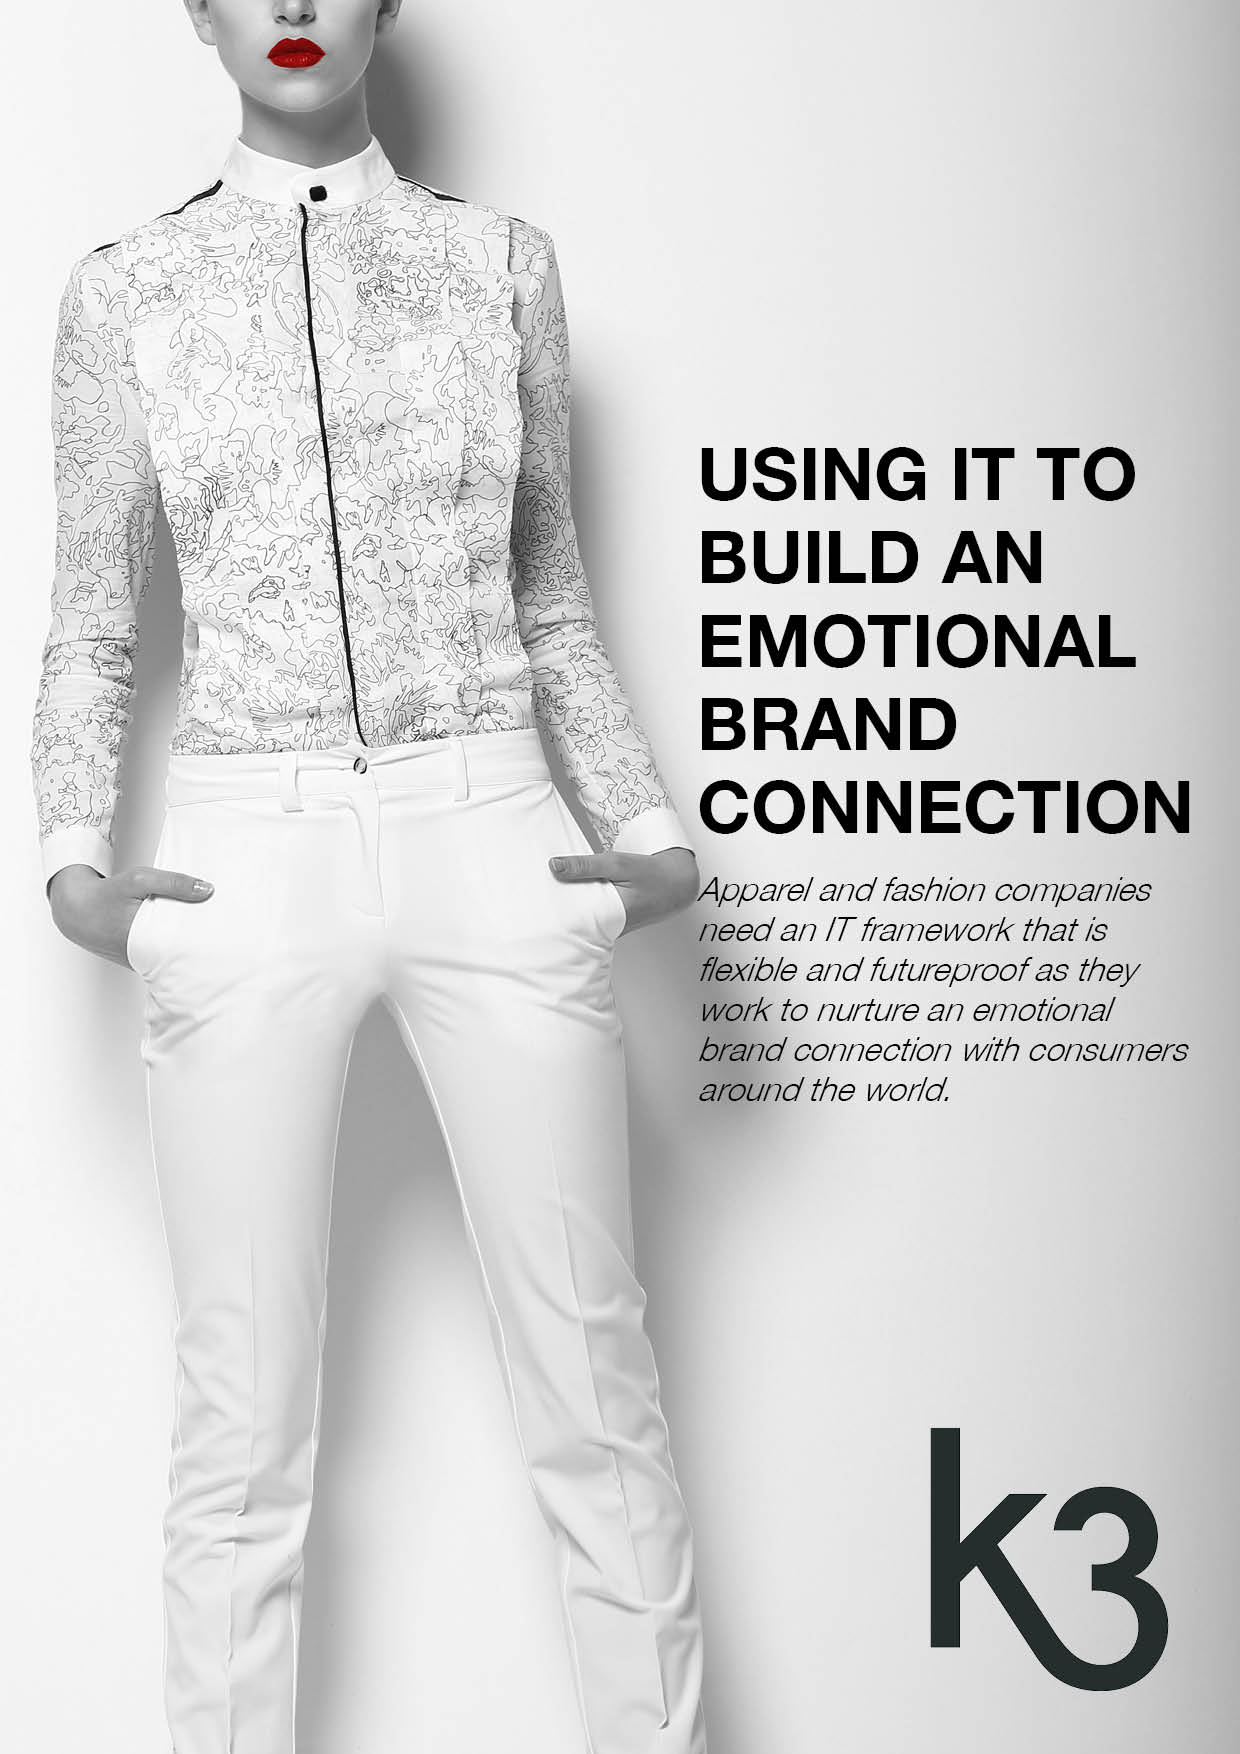 Using IT to build emotional brand connection